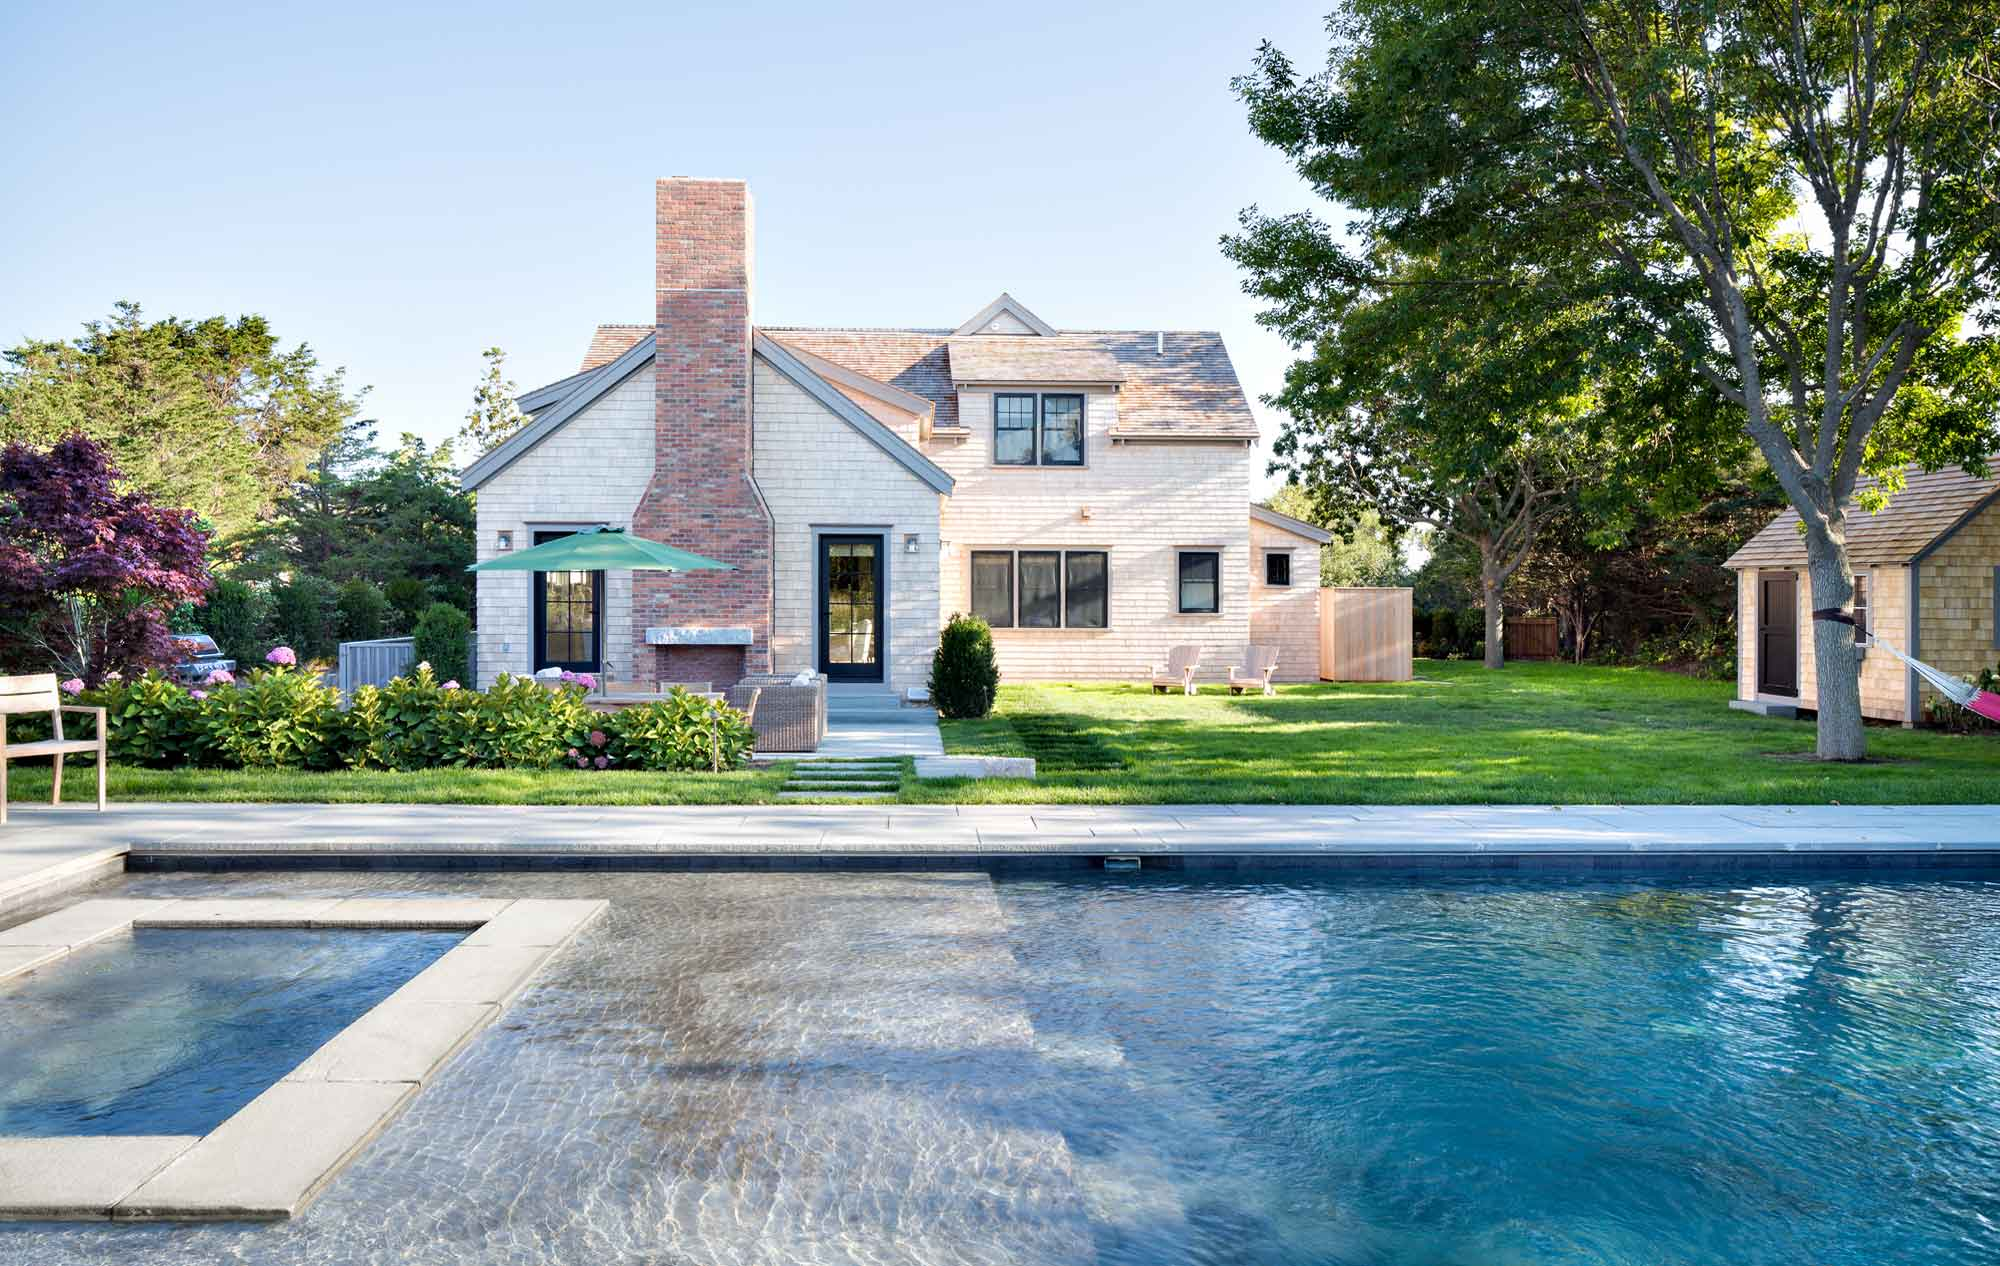 This modern Nantucket farmhouse compound in the quiet neighborhood of Old Westmoor Farm has been thoughtfully designed and masterfully executed, offering six bedrooms and 7,500 square feet of living space across three floors.